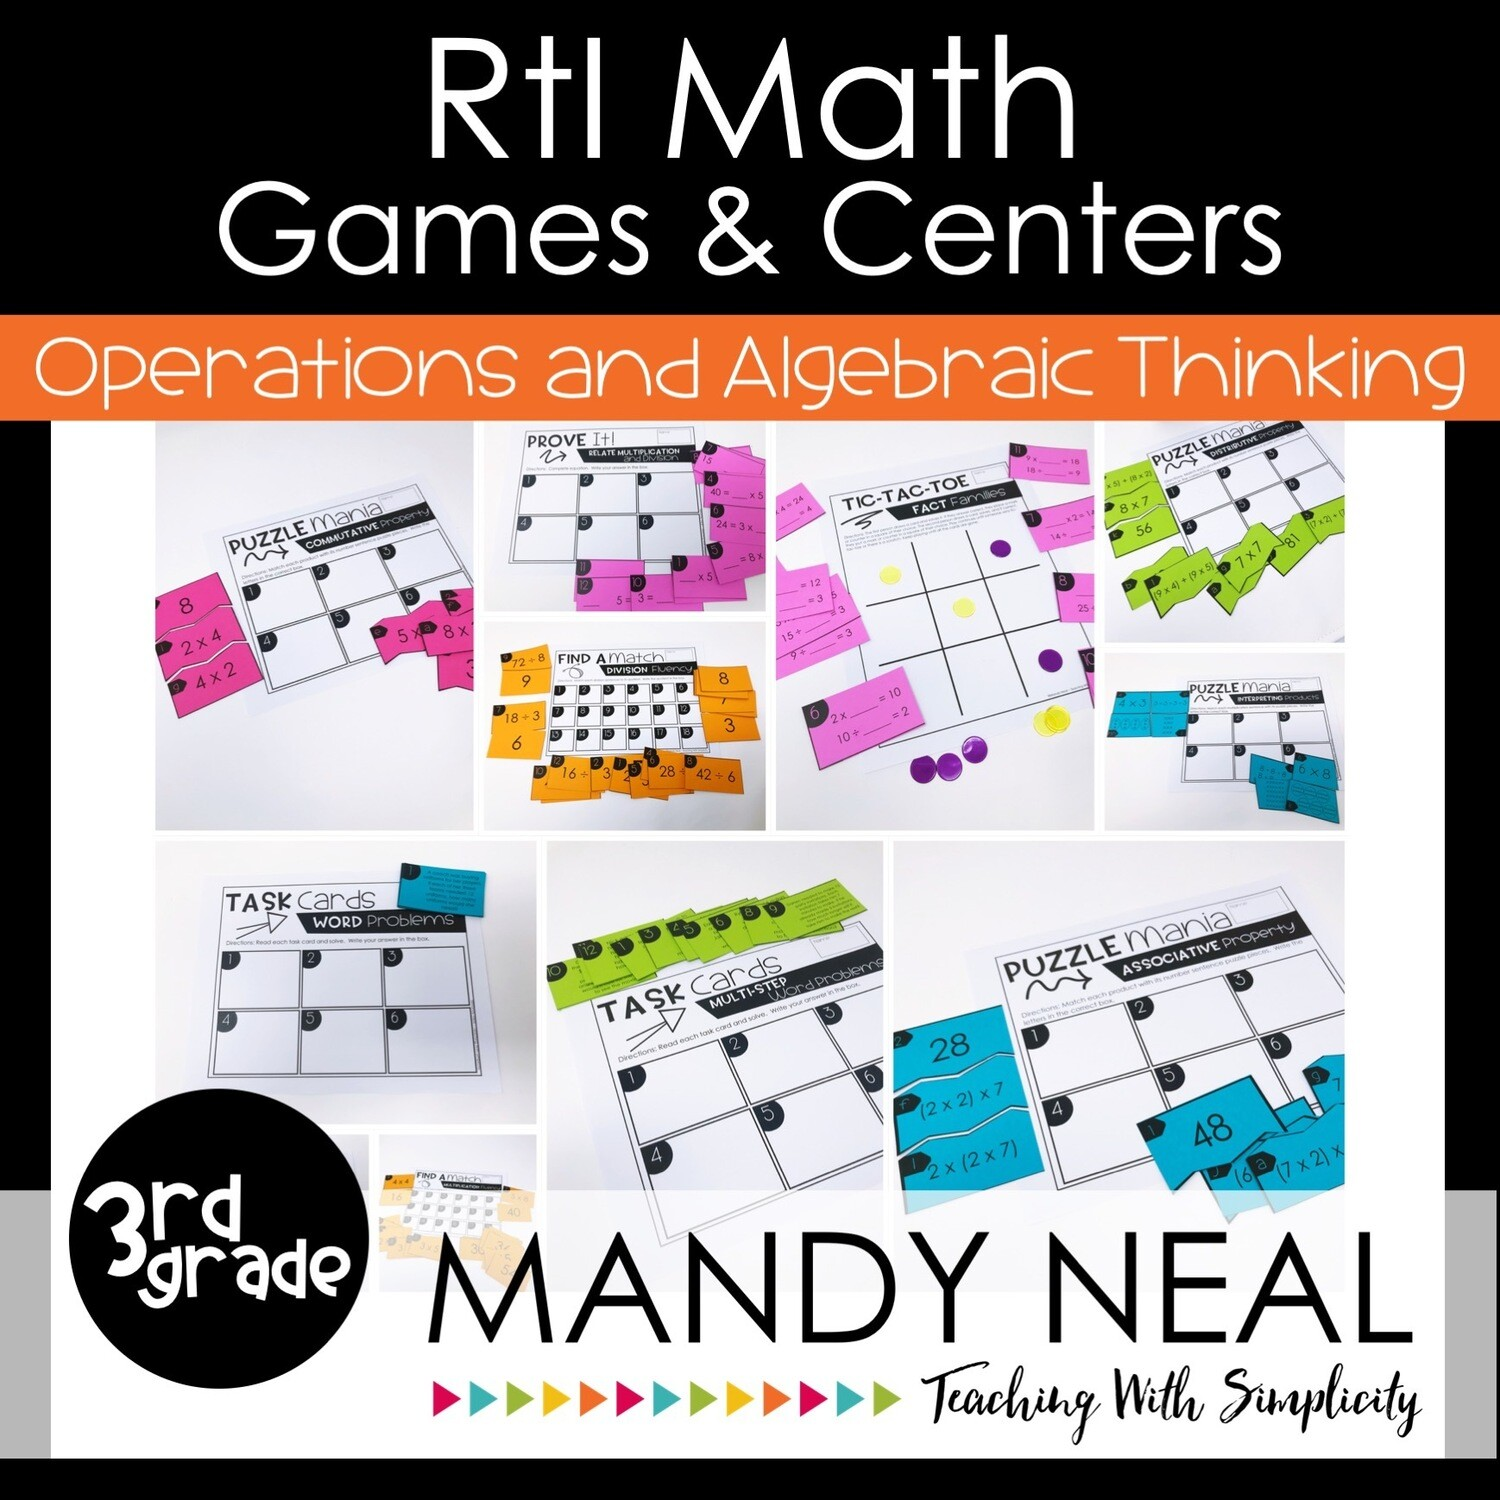 3rd Grade Math Intervention Games and Centers for OA